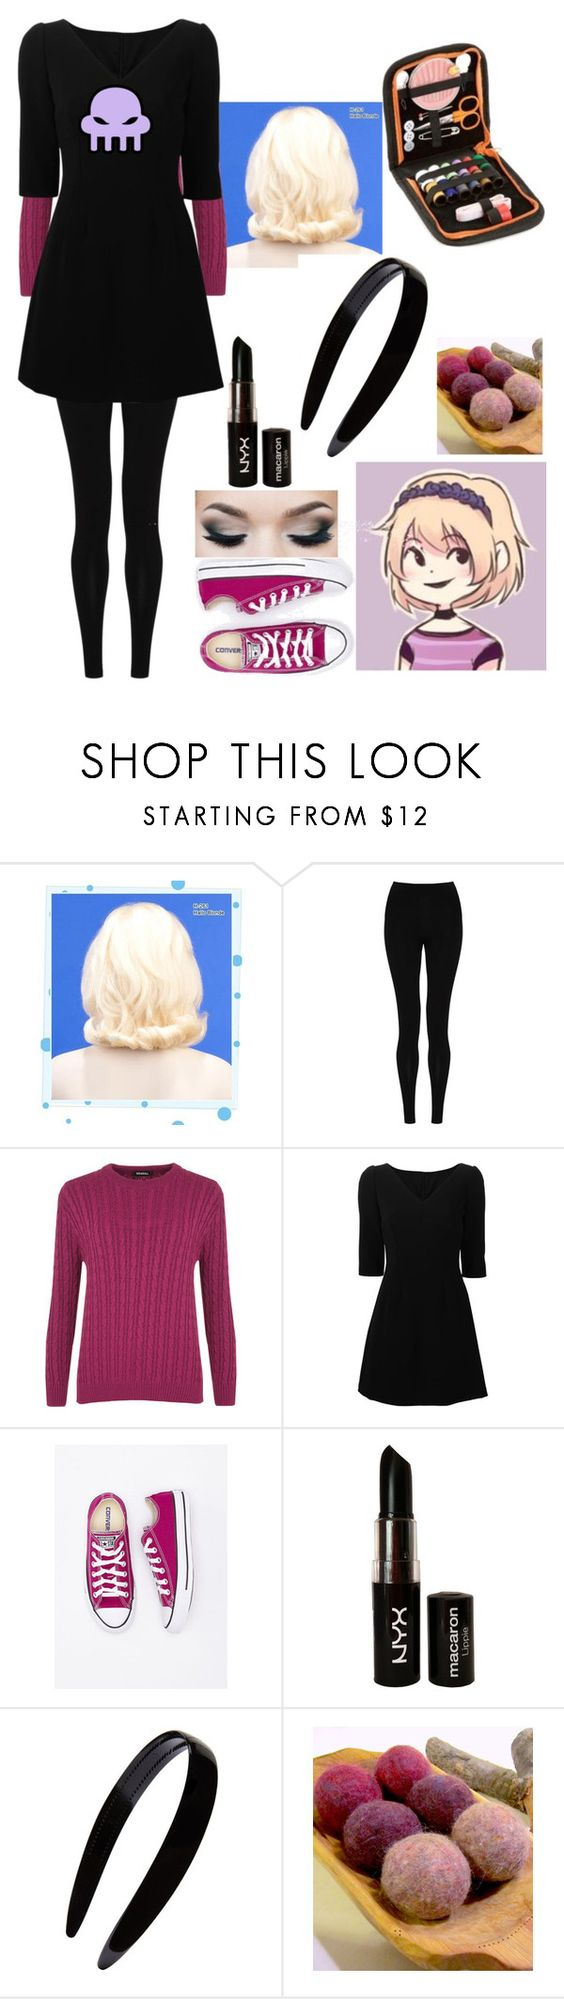 Rose Lalonde Inspired Outfit (7/??) *Homestuck Series* by bajancanadian-girl on Polyvore featuring Dolce&Gabbana, WearAll, M&S Collection, France Luxe, NYX, Wigs2You and Converse